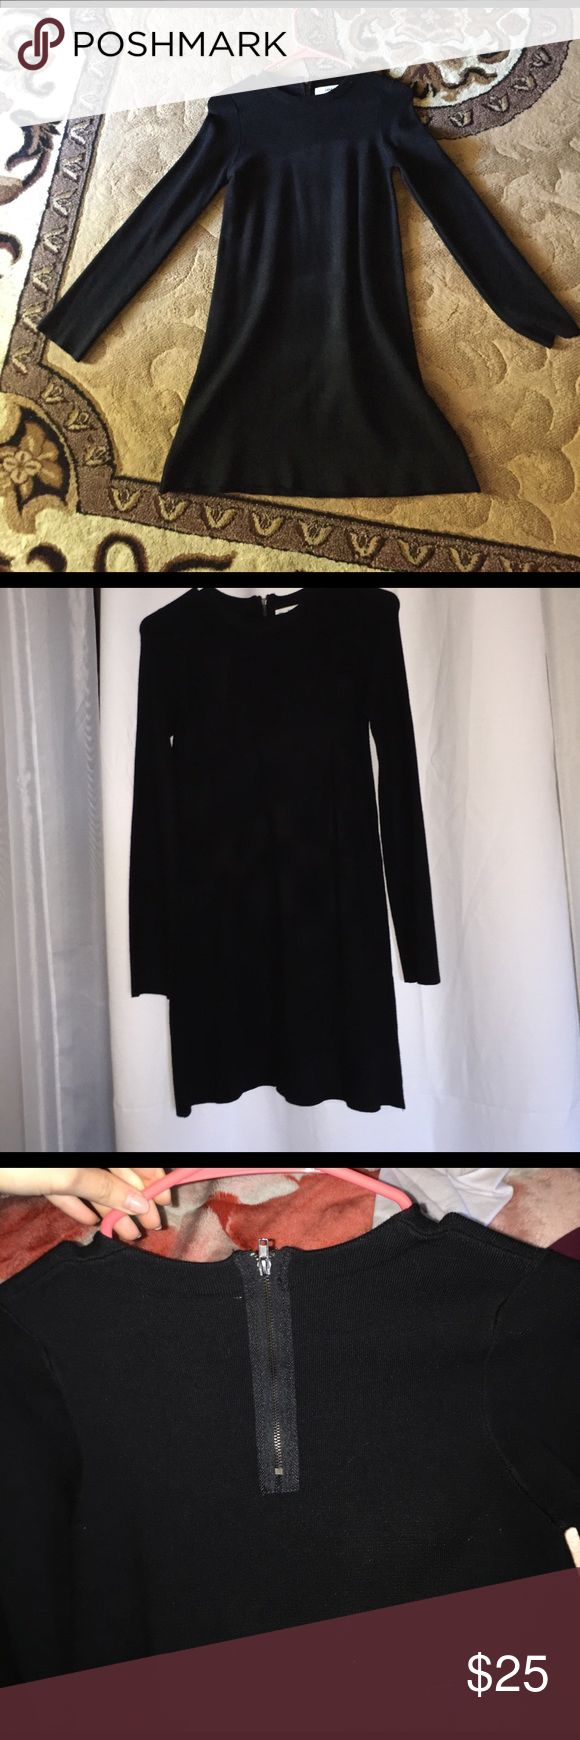 ZARA Black Dress ❤ Brand New Zara black dress from the knitwear collection it has a zipper in the back  ❤ NEW without tags. Zara Dresses Mini